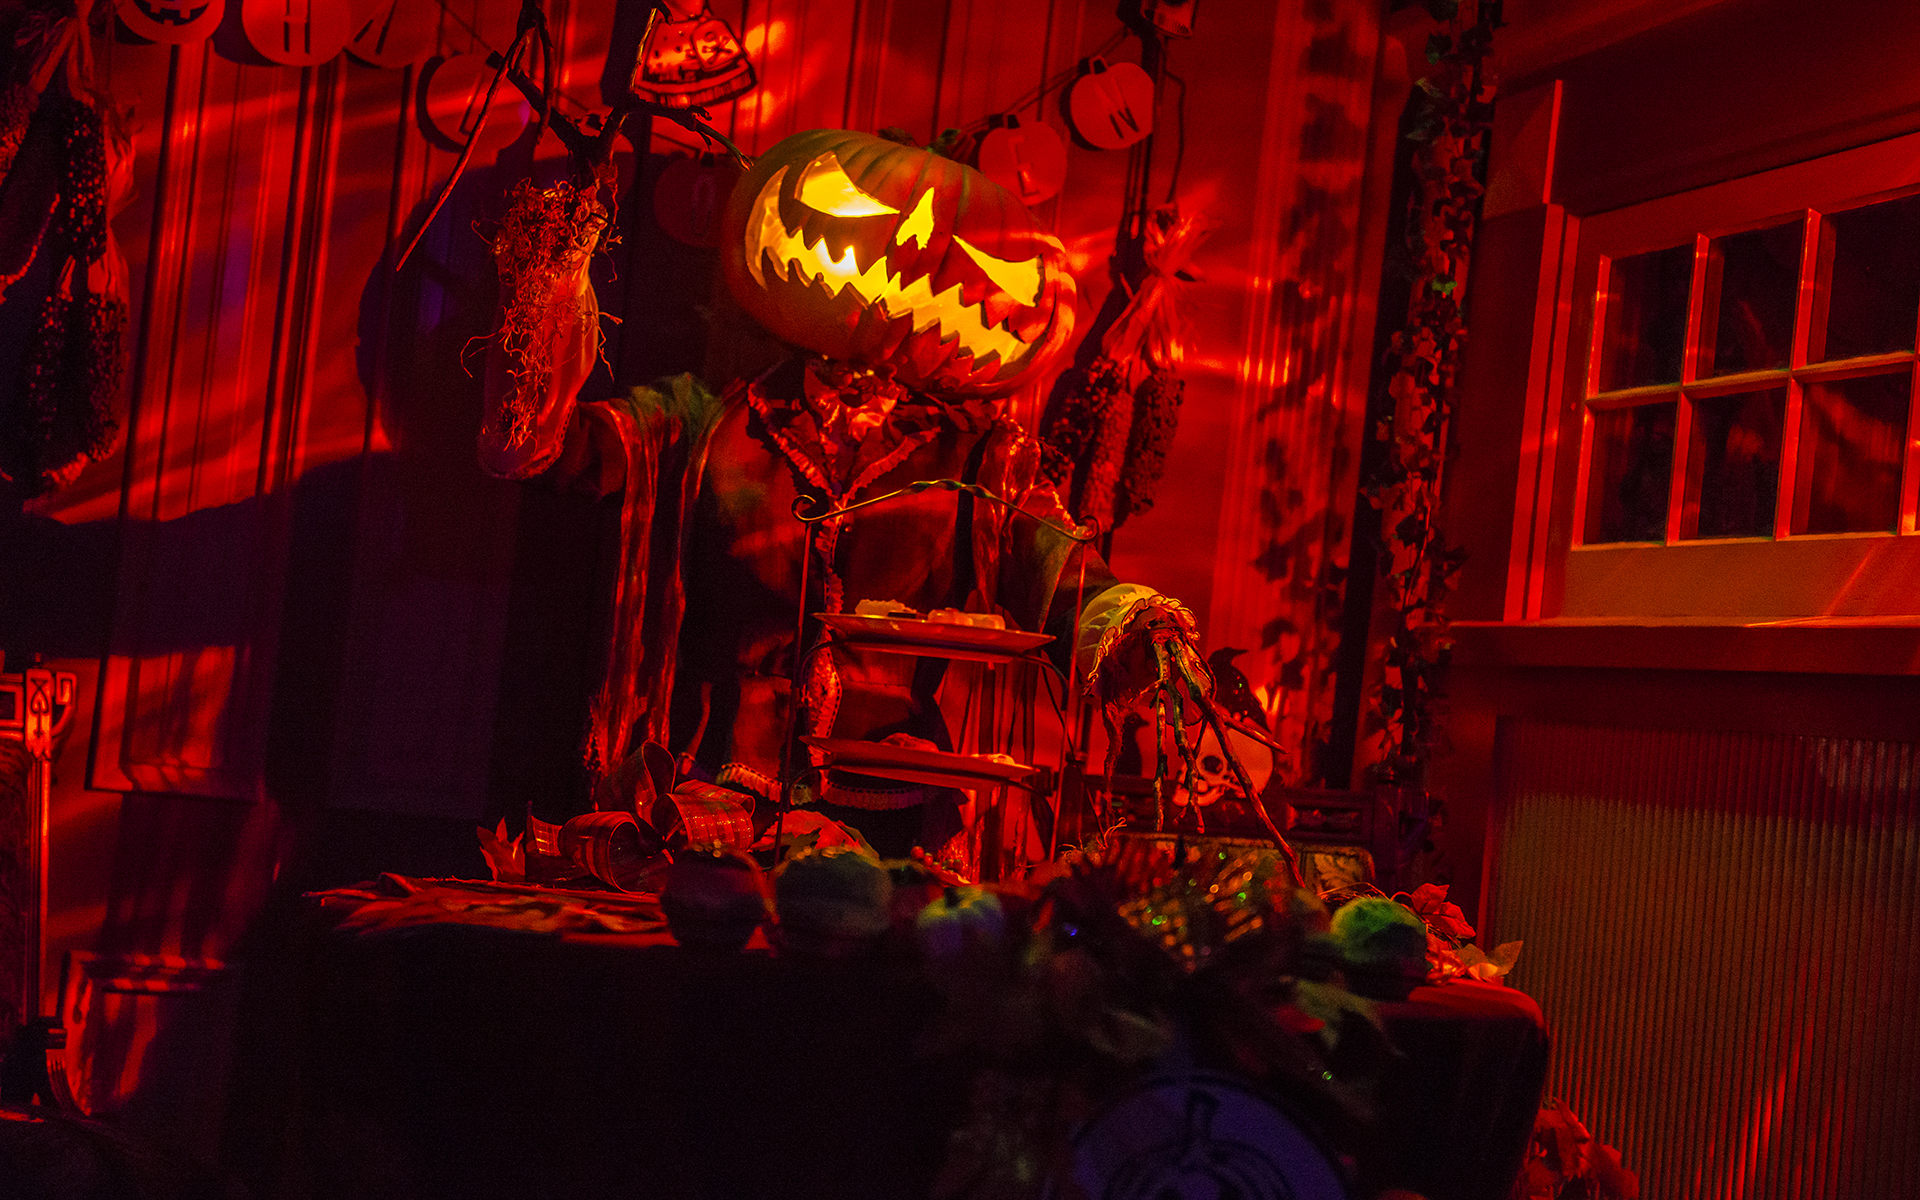 winchester mystery house's hallowe'en candlelight tour: 2017 review